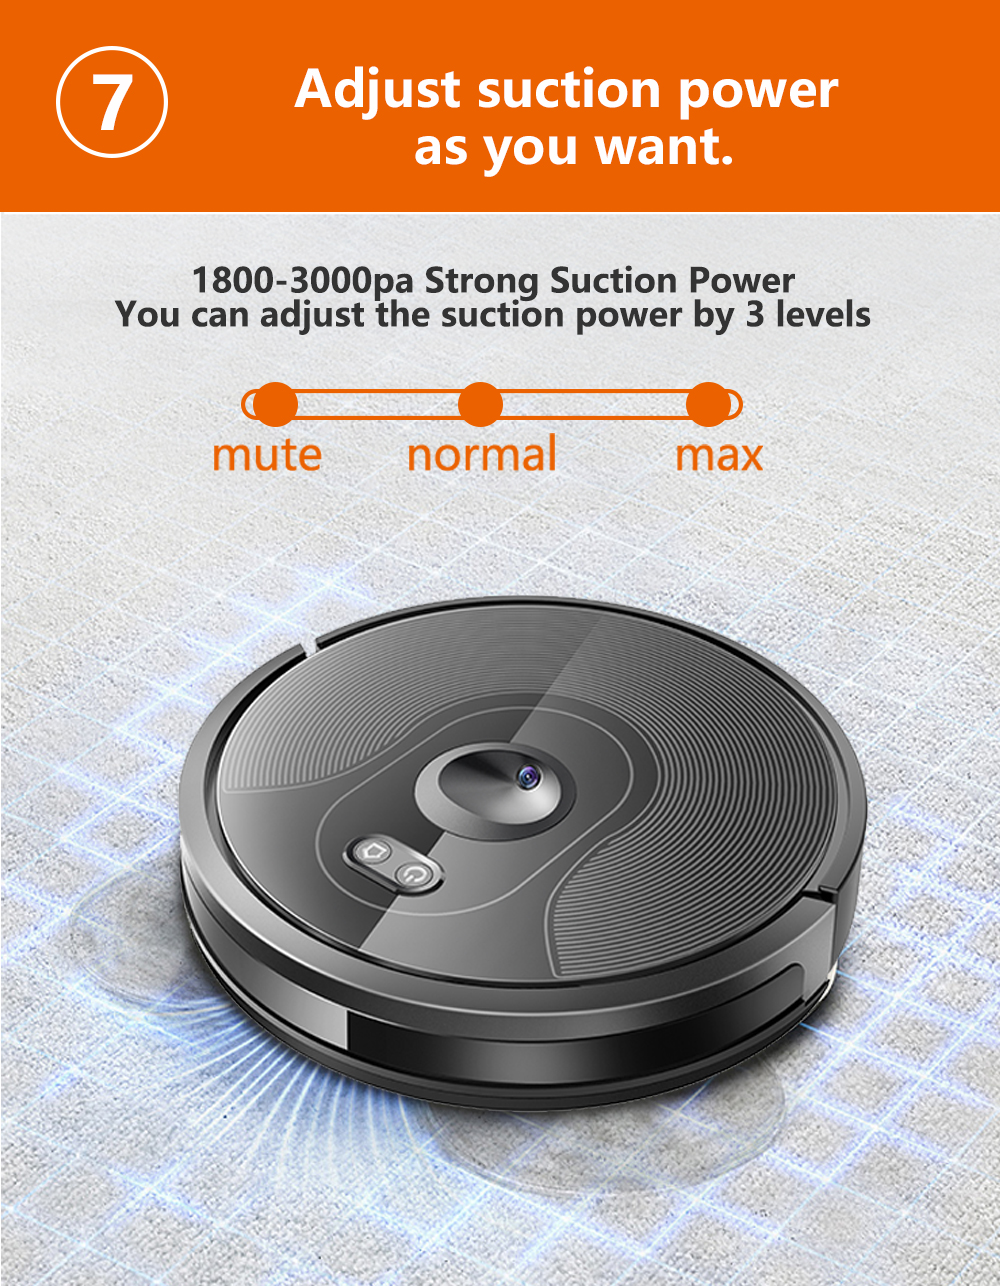 H676e1699775b48f8803b335f5e7f2f22p ABIR X6 Robot Vacuum Cleaner with Camera Navigation,WIFI APP controlled,Breakpoint Continue Cleaning,Draw Cleaning Area,Save Map